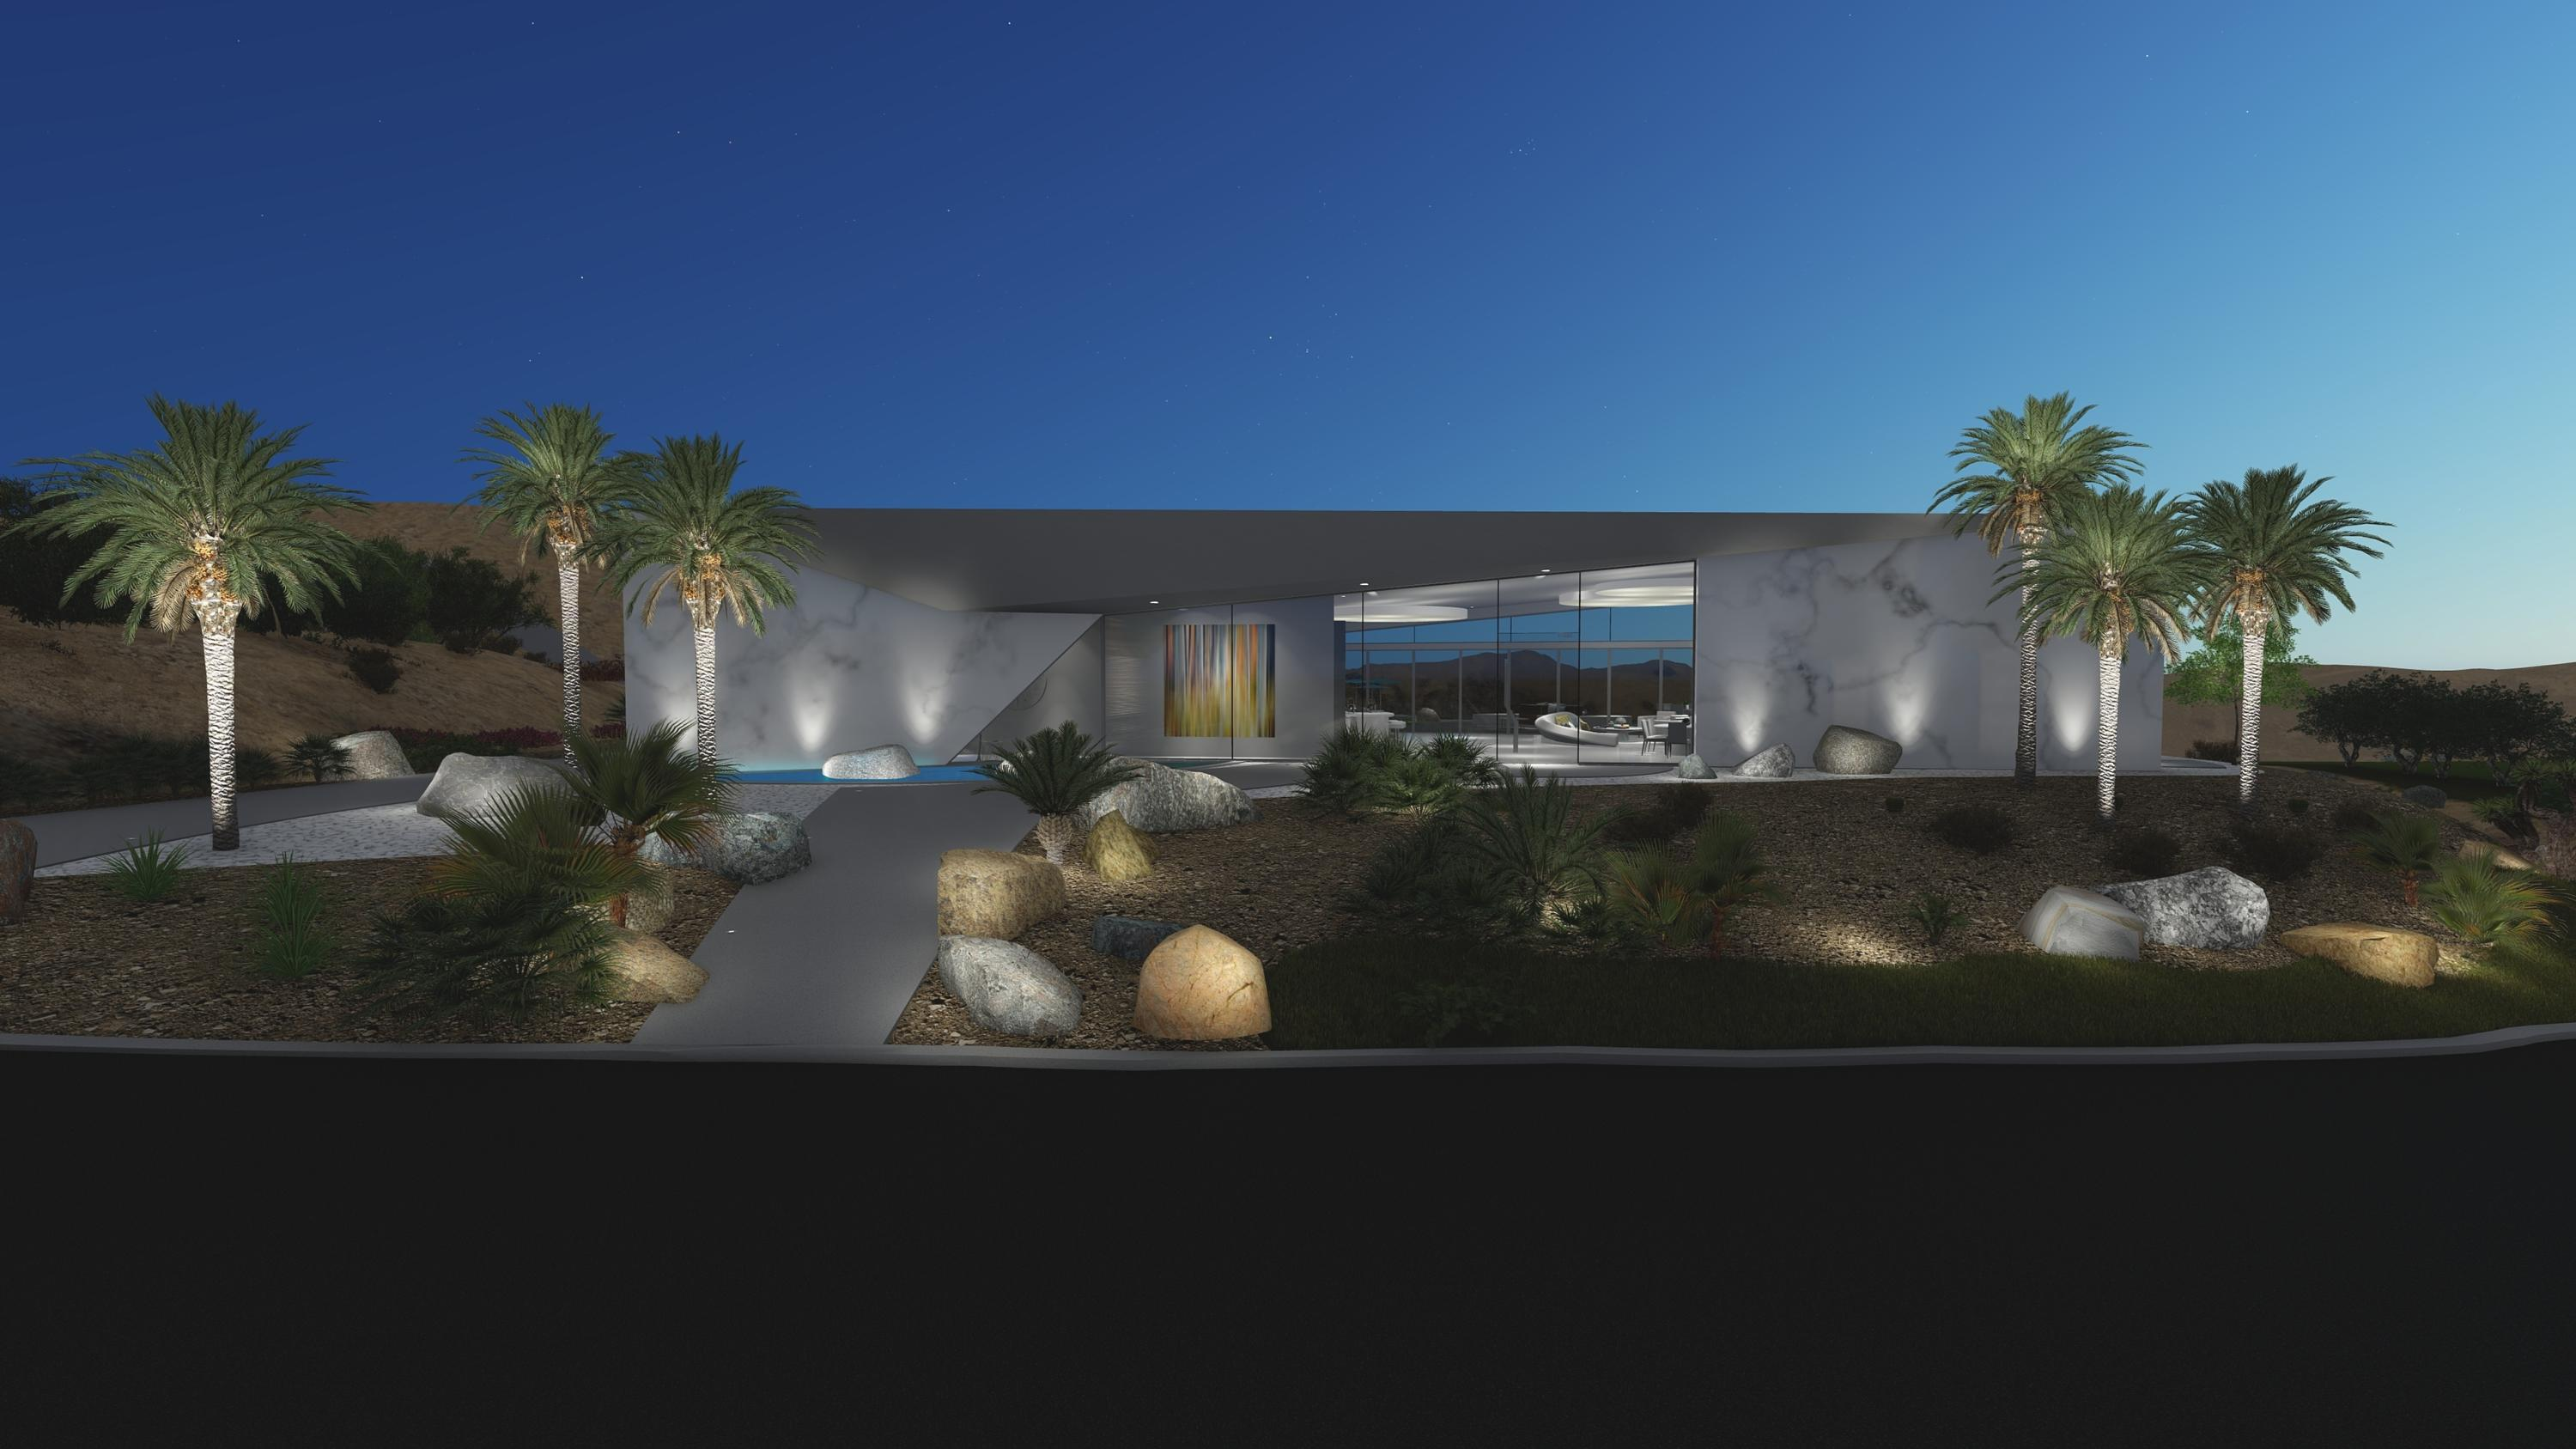 Pre-Construction Offering - Enjoy  Mirada Estates & Ritz Carlton experience in this Ultra Contemporary, architecturally significant home by Brian Foster.  On a private ''king sized'' lot over 3/4 acres with incredible front row views of the city and San Jacinto mountains.  Offering walls of glass, pocket sliding doors, fire features, water feature, pool, spa and much more.  Main home offers 3 bedrooms/3.5 baths, study, lavish master suite, large entertaining areas and 3 car garage.  Detached guest house offers 2 bedrooms, 2 baths in 1200 square feet with a carport.   Also included are: outdoor kitchen/cabana/dining area, outdoor ZEN lounge area off master bath with double showers, fire feature, daybed & bathtub.  Exclusive access agreement for the Ritz Carlton.  You easily live the Five Star resort lifestyle with in-home dining, restaurants, spa, gym, pools & more at discounted rates. No membership fees.  Your guests can also stay at the Ritz Carlton.  Mirada is the most private enclave of custom homes with unmatched security and 24-hour patrol.